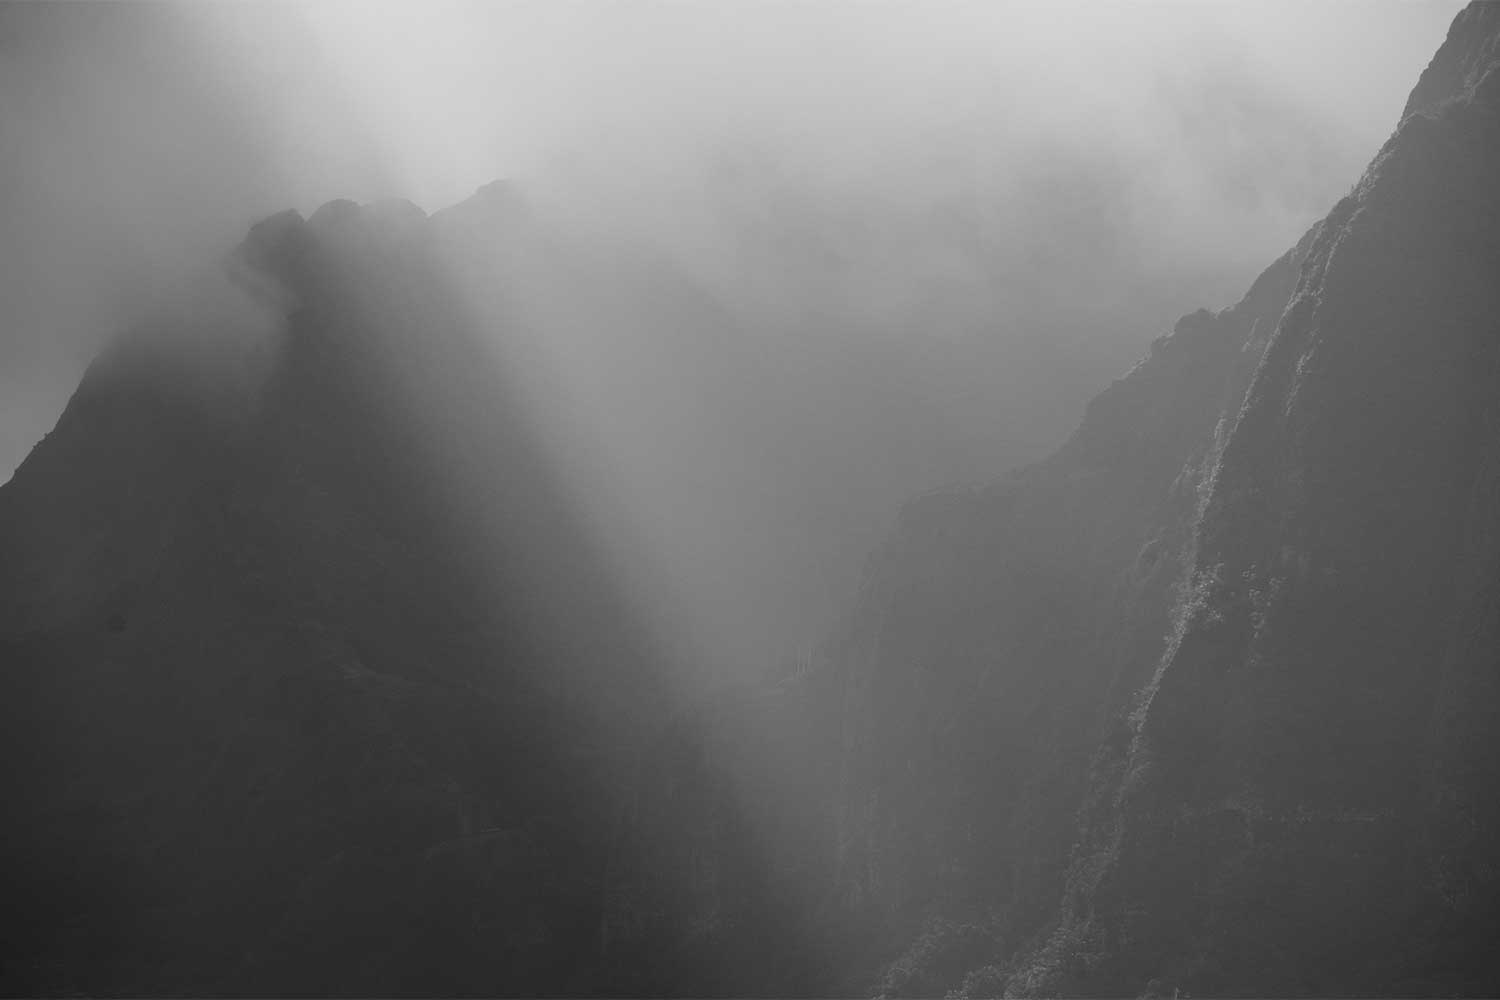 Black and white image of the Koolau mountain range with light shining through clouds